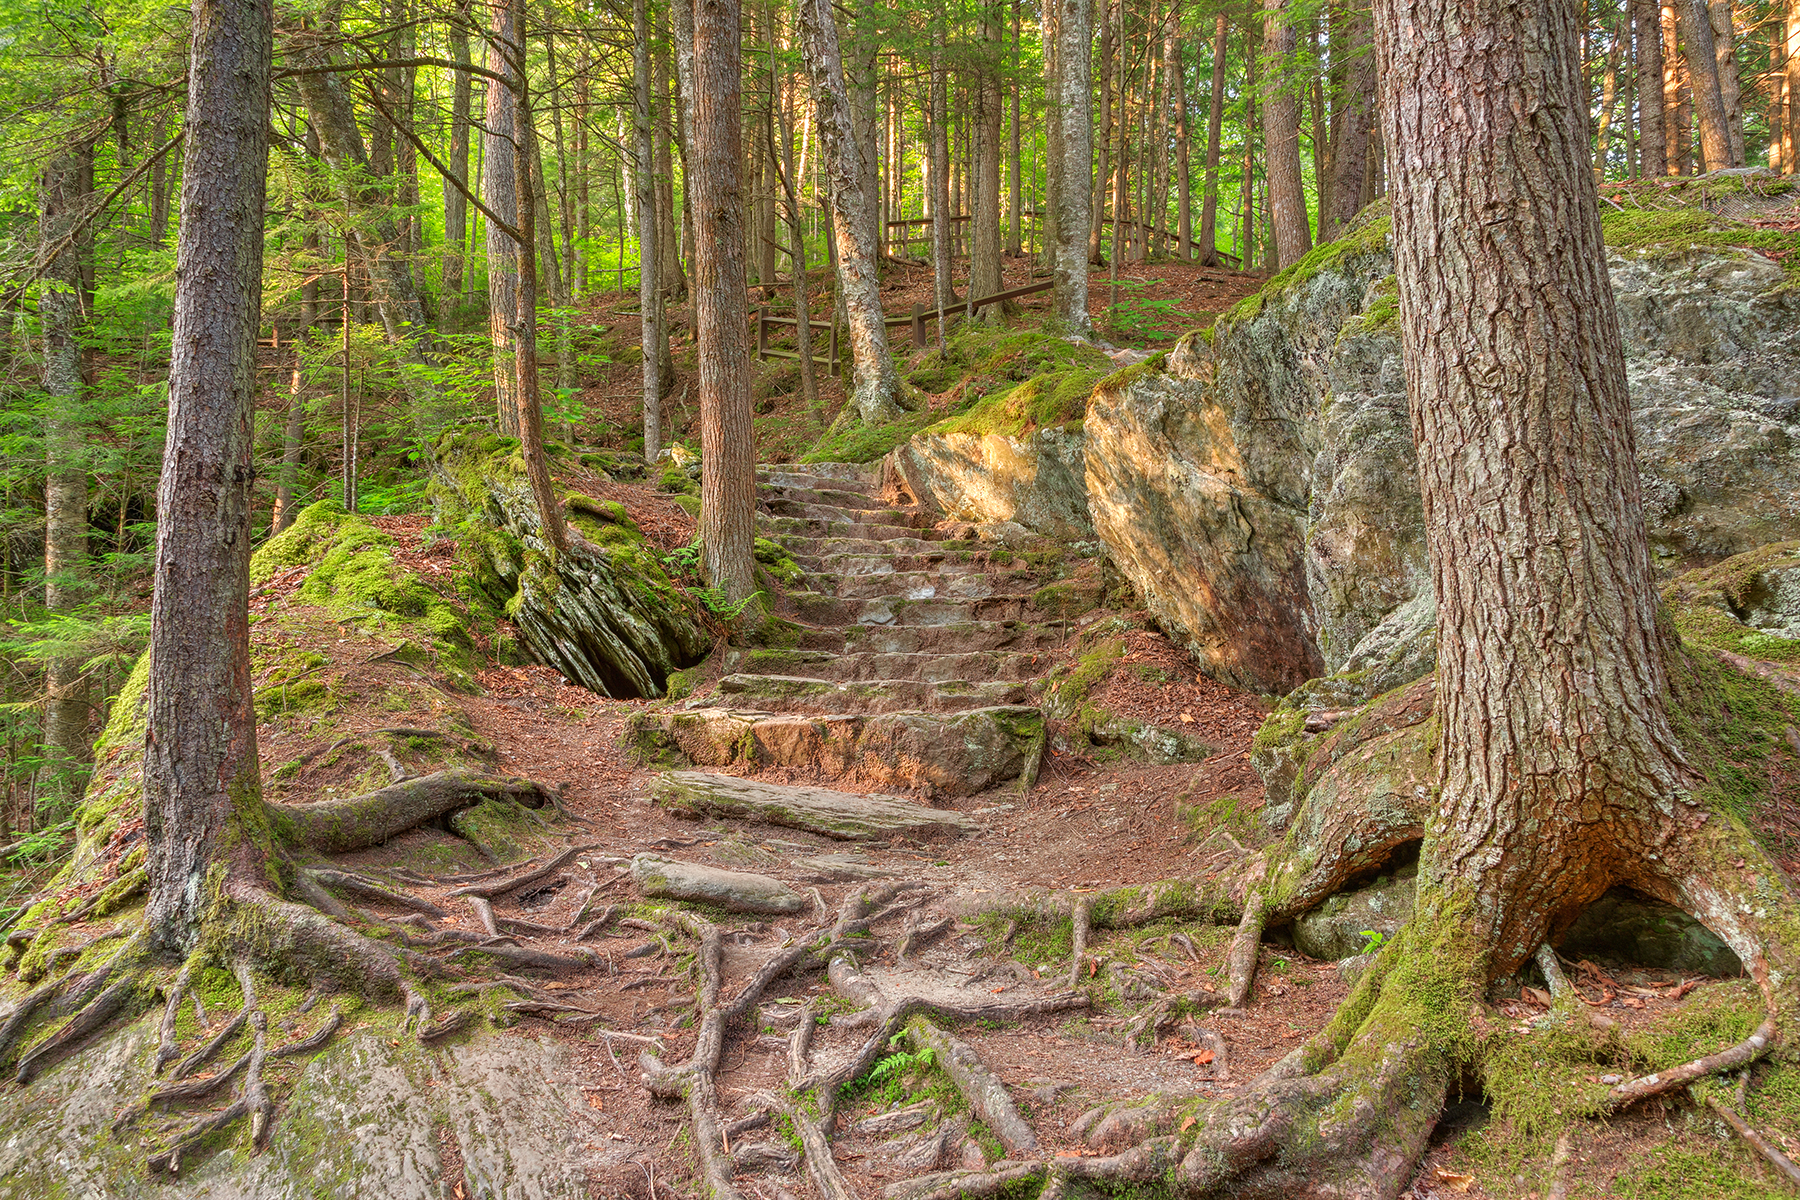 Green mountain forest trail - hdr photo